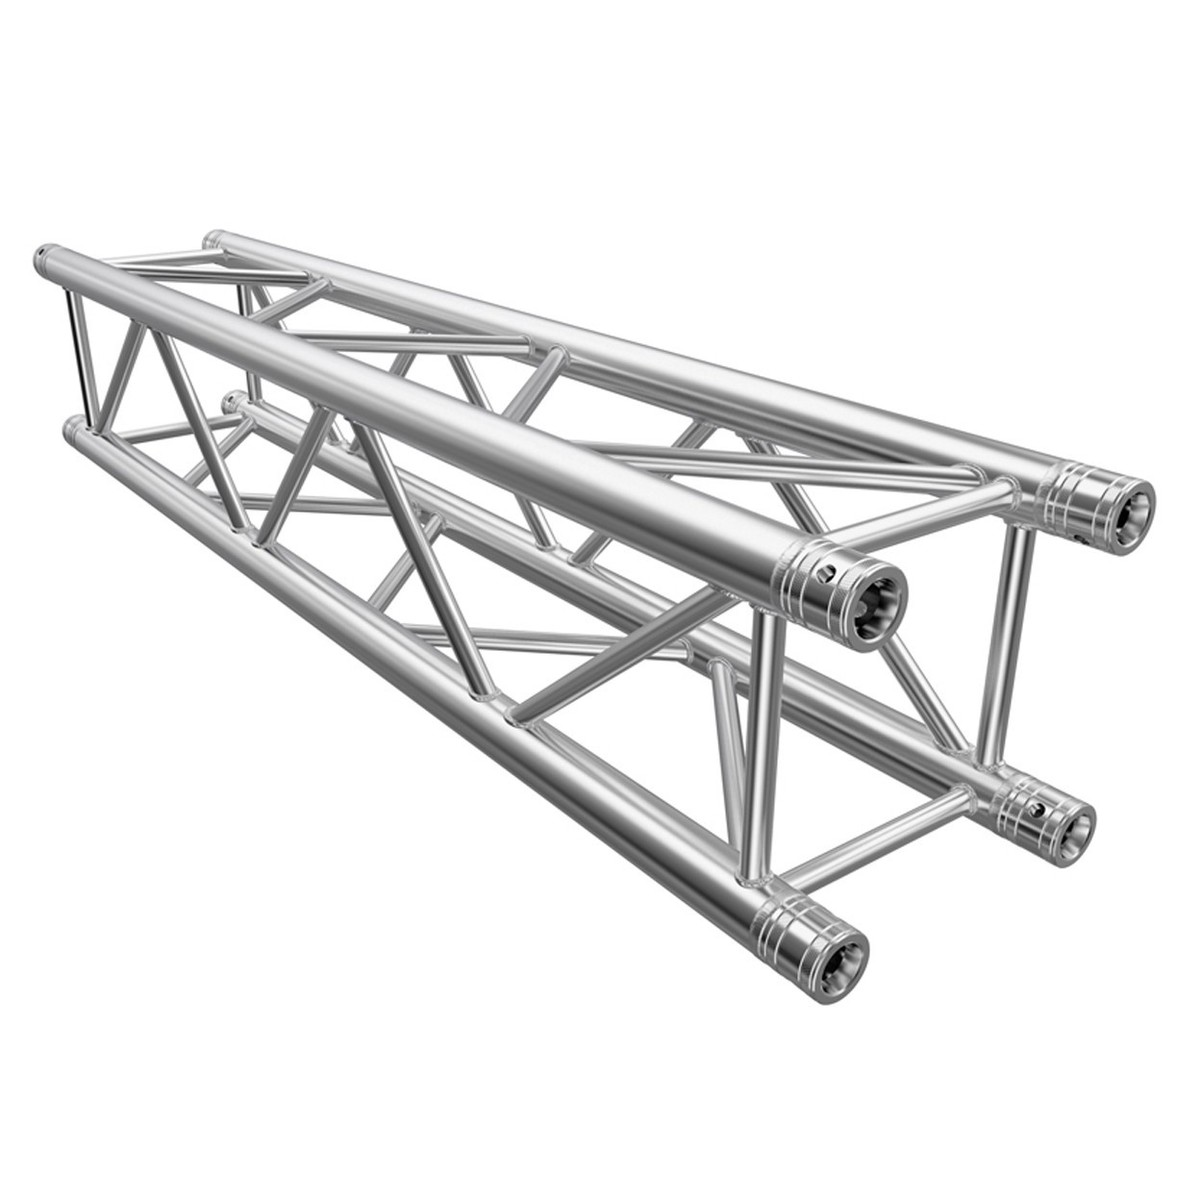 Global Truss F34150 F34 Standard Truss, 1.5m at Gear4music